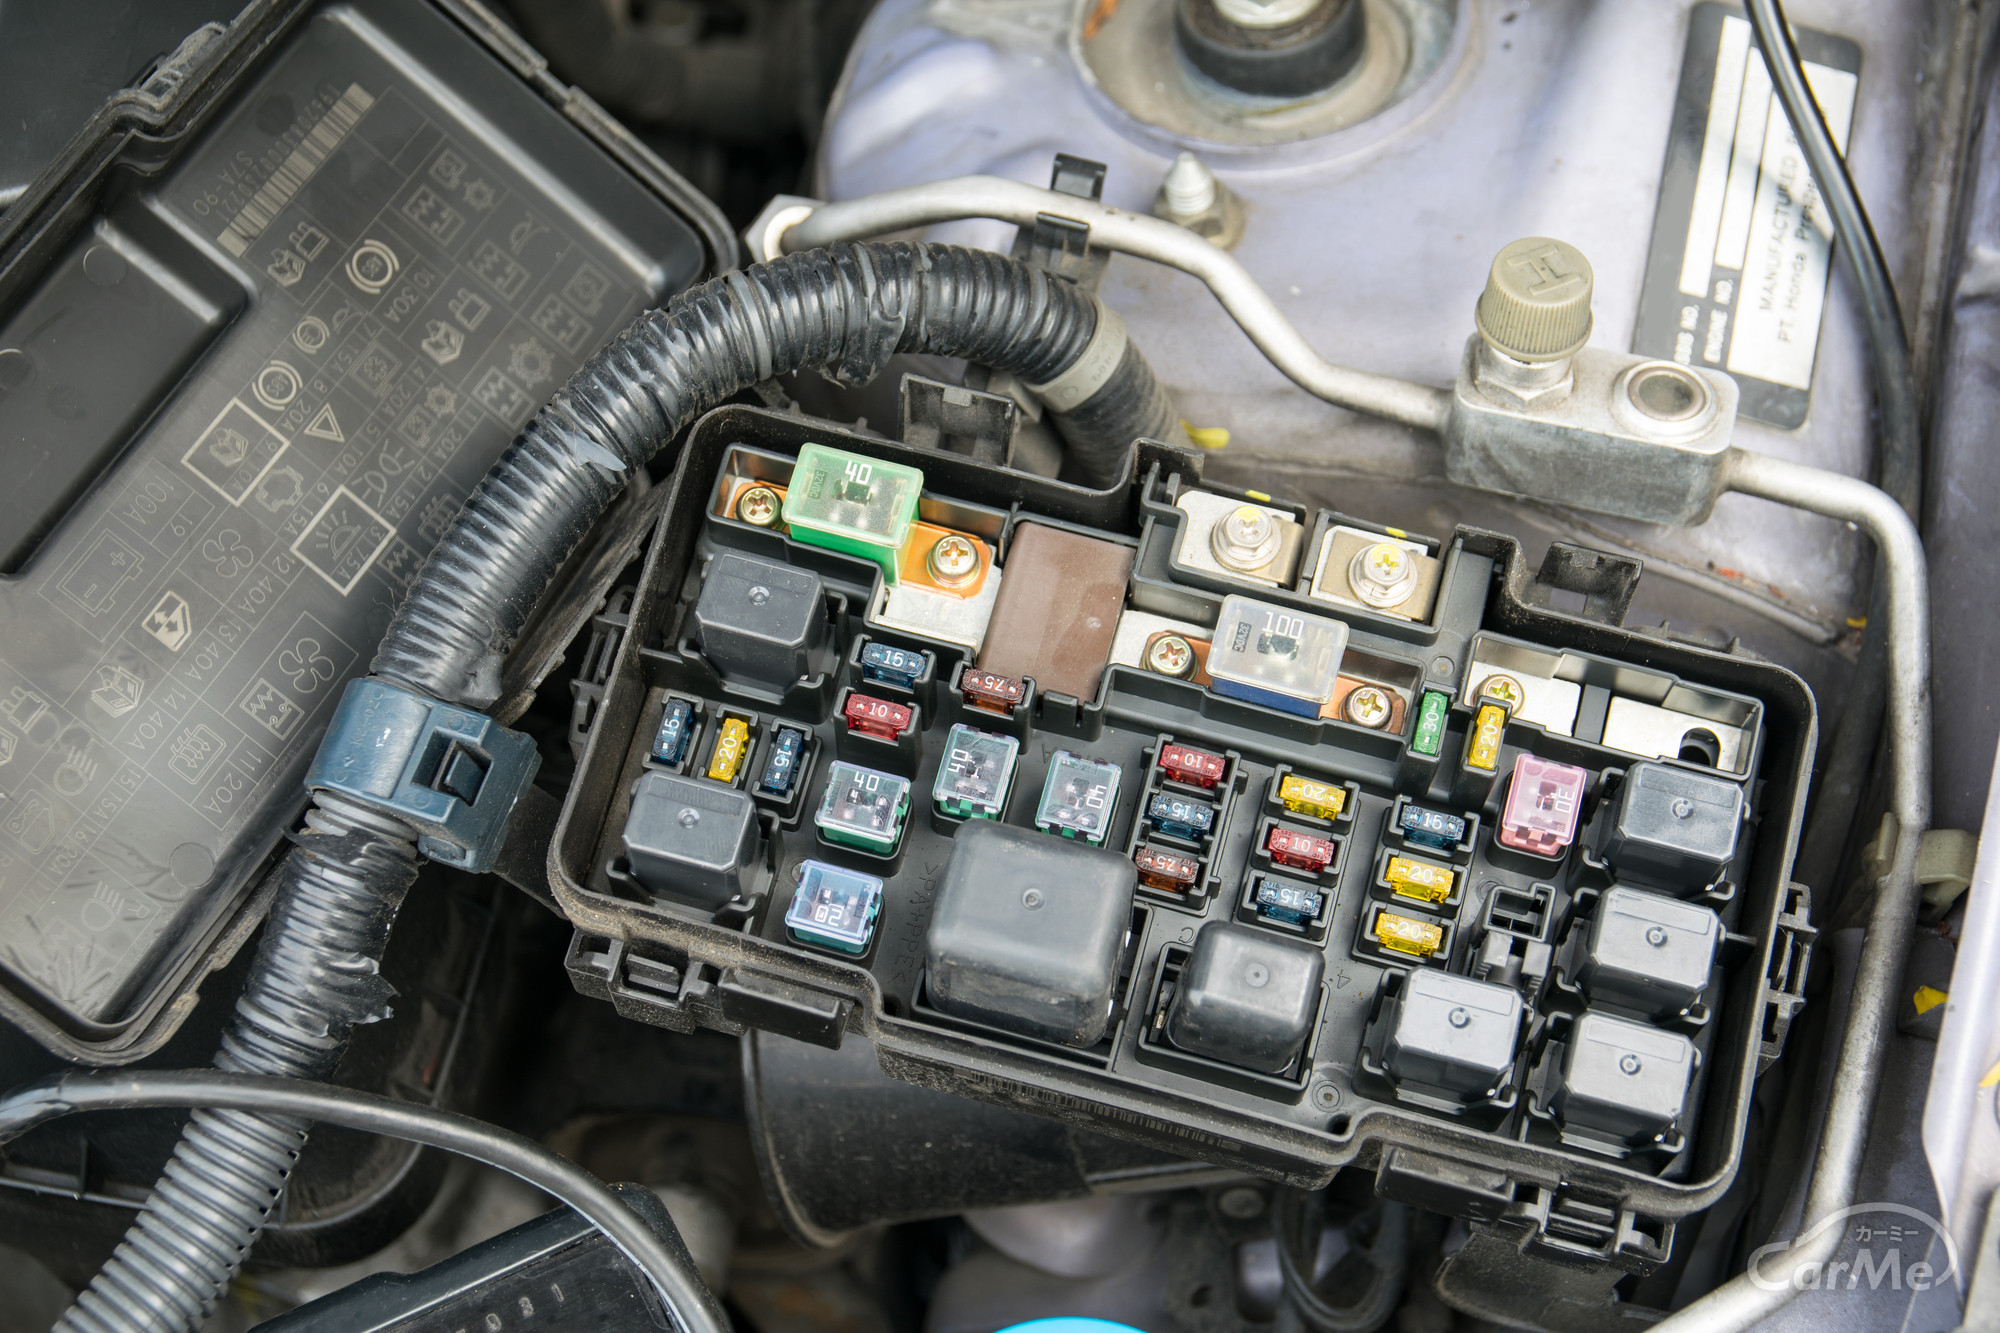 D E A Ddbb E F E D on 2004 nissan pathfinder fuse box